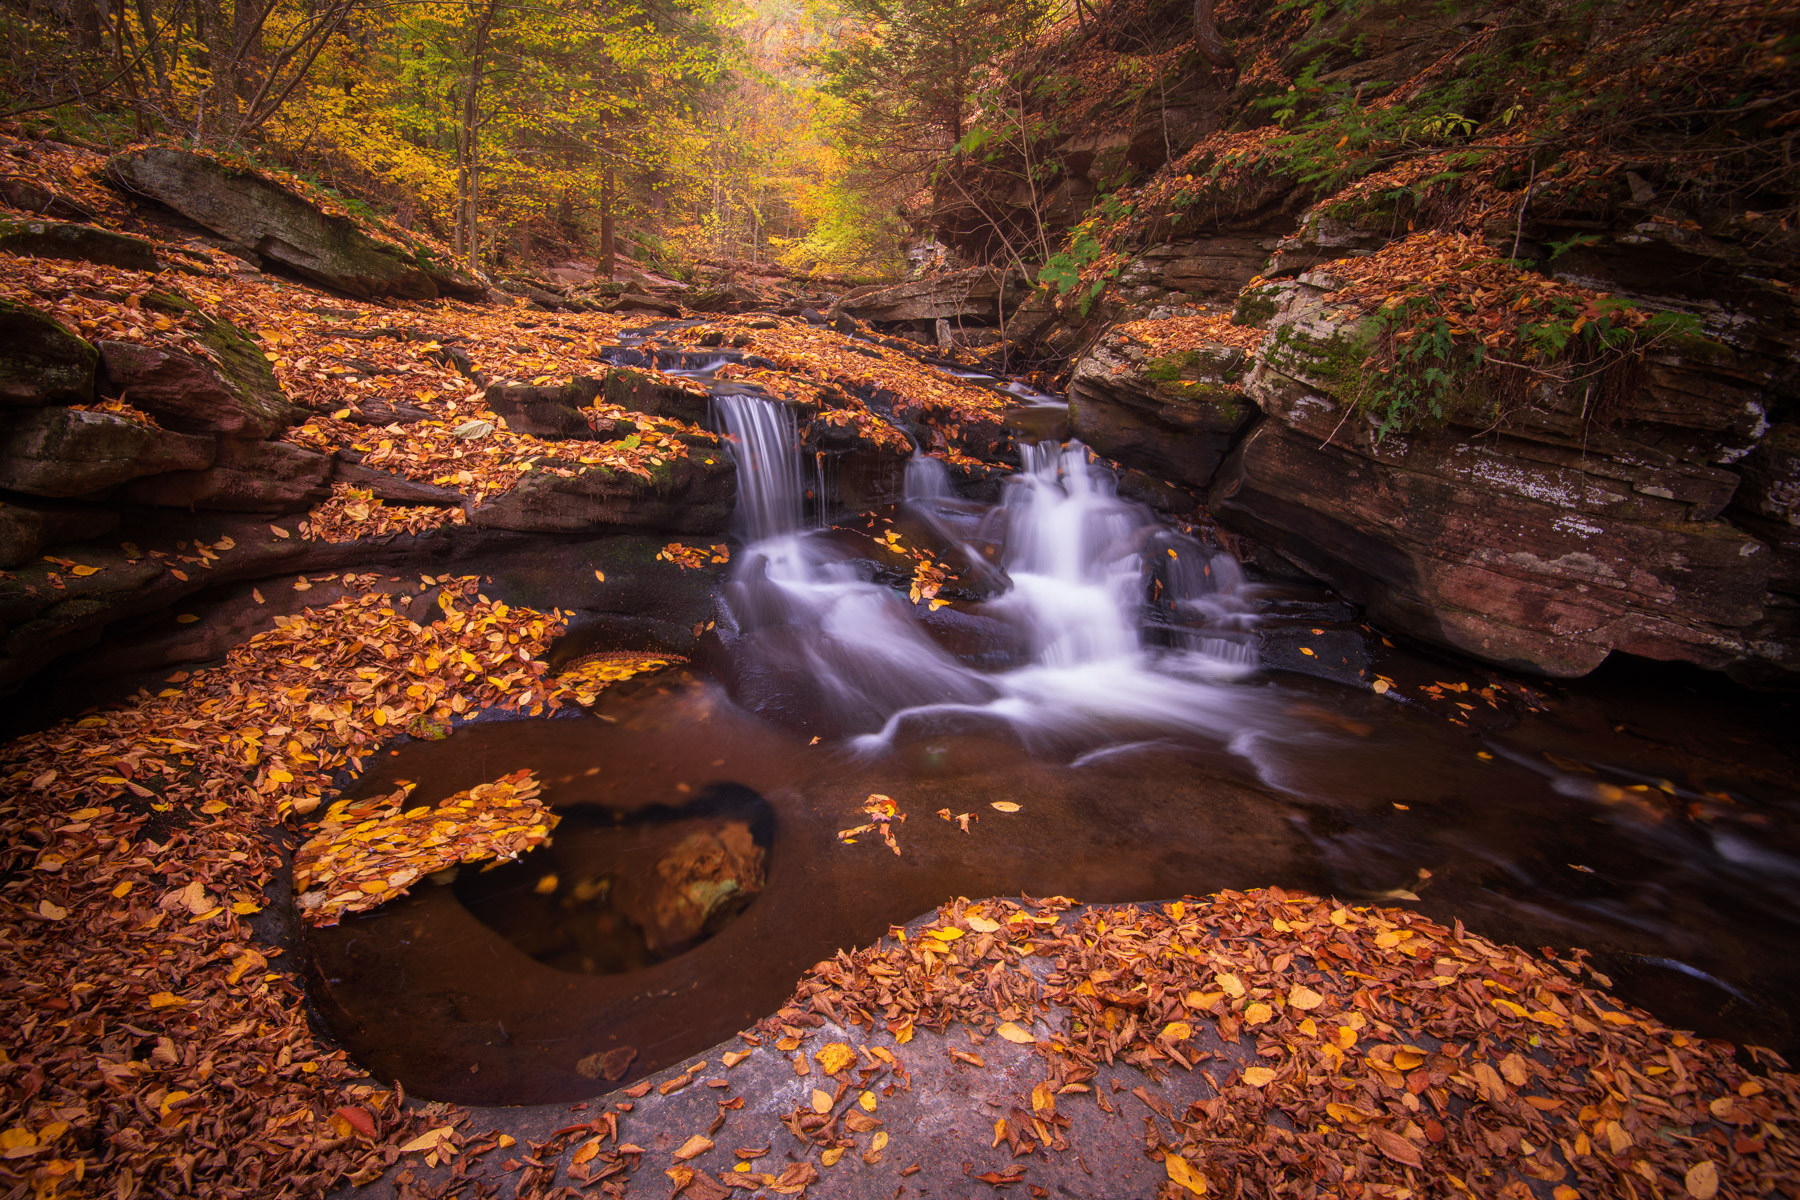 A small waterfall in Glen Leigh captured with peak autumn color, Ricketts Glen State Park, Pennsylvania.